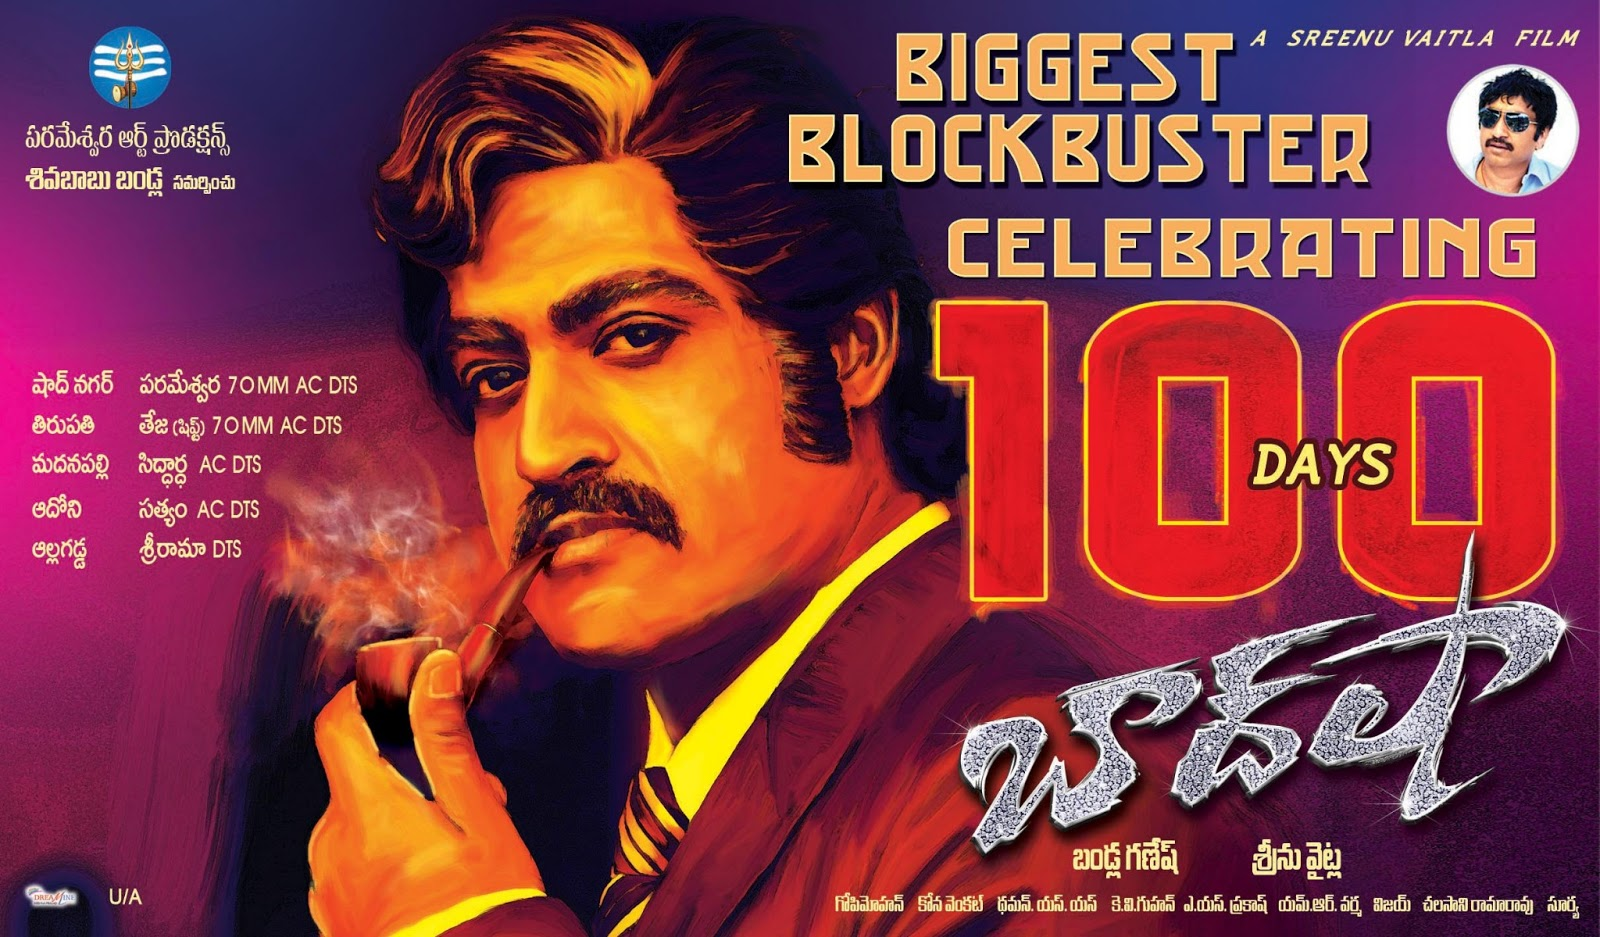 Baadshah 100 Days Special Poster - Cinema65.com Baadshah 2013 Posters